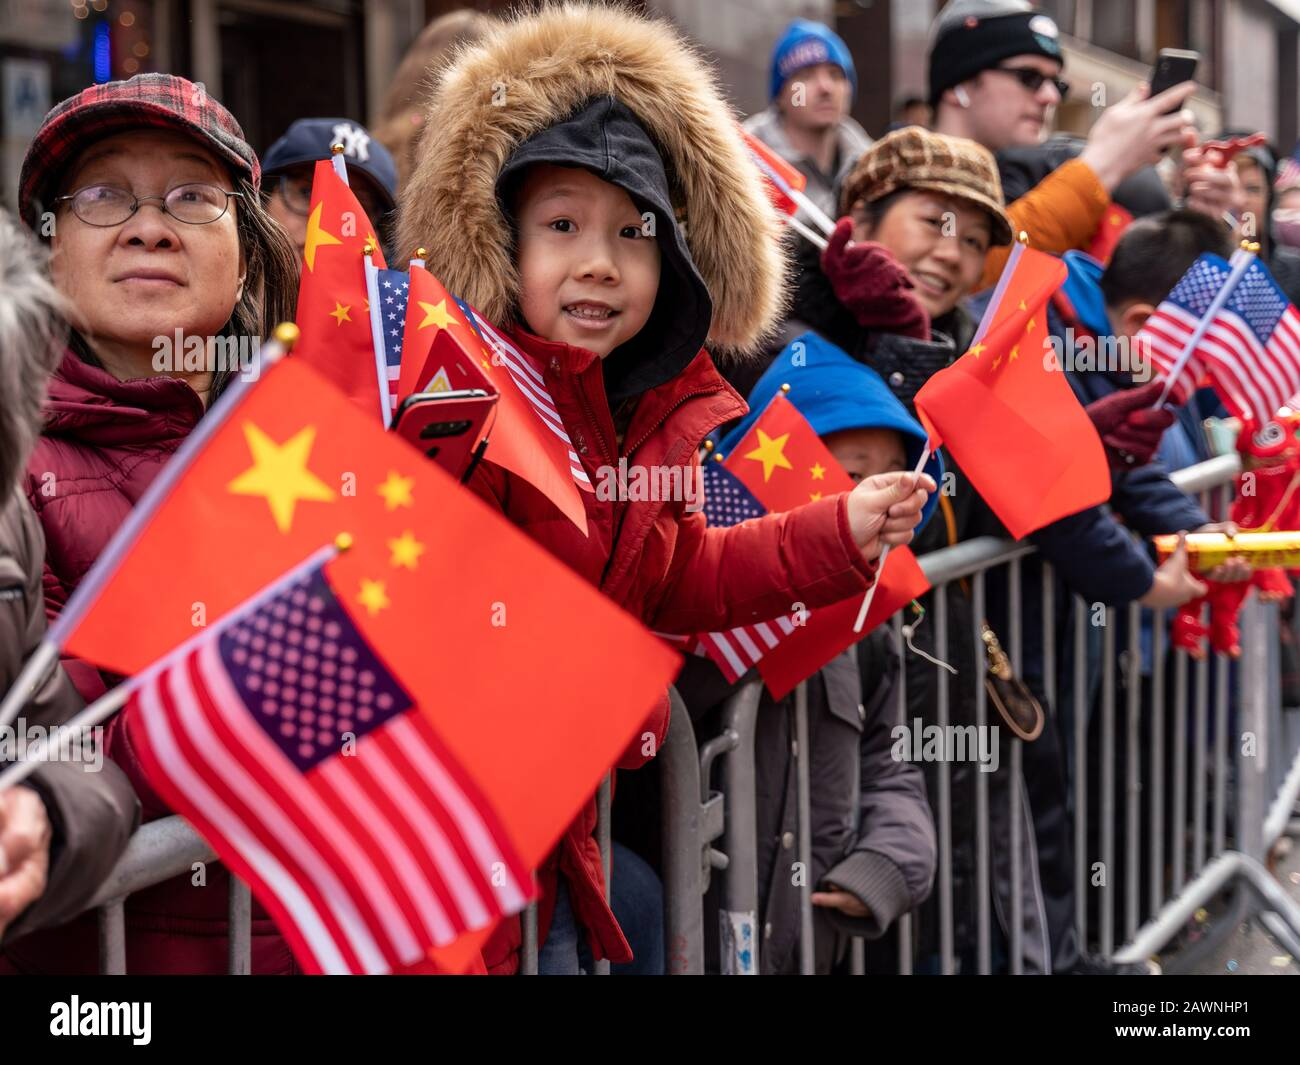 New York, New York, USA. 9th Feb, 2020. New York, New York, U.S.: people attend the annual Lunar New Year Parade and Festival in Chinatown. Credit: Corine Sciboz/ZUMA Wire/Alamy Live News Stock Photo